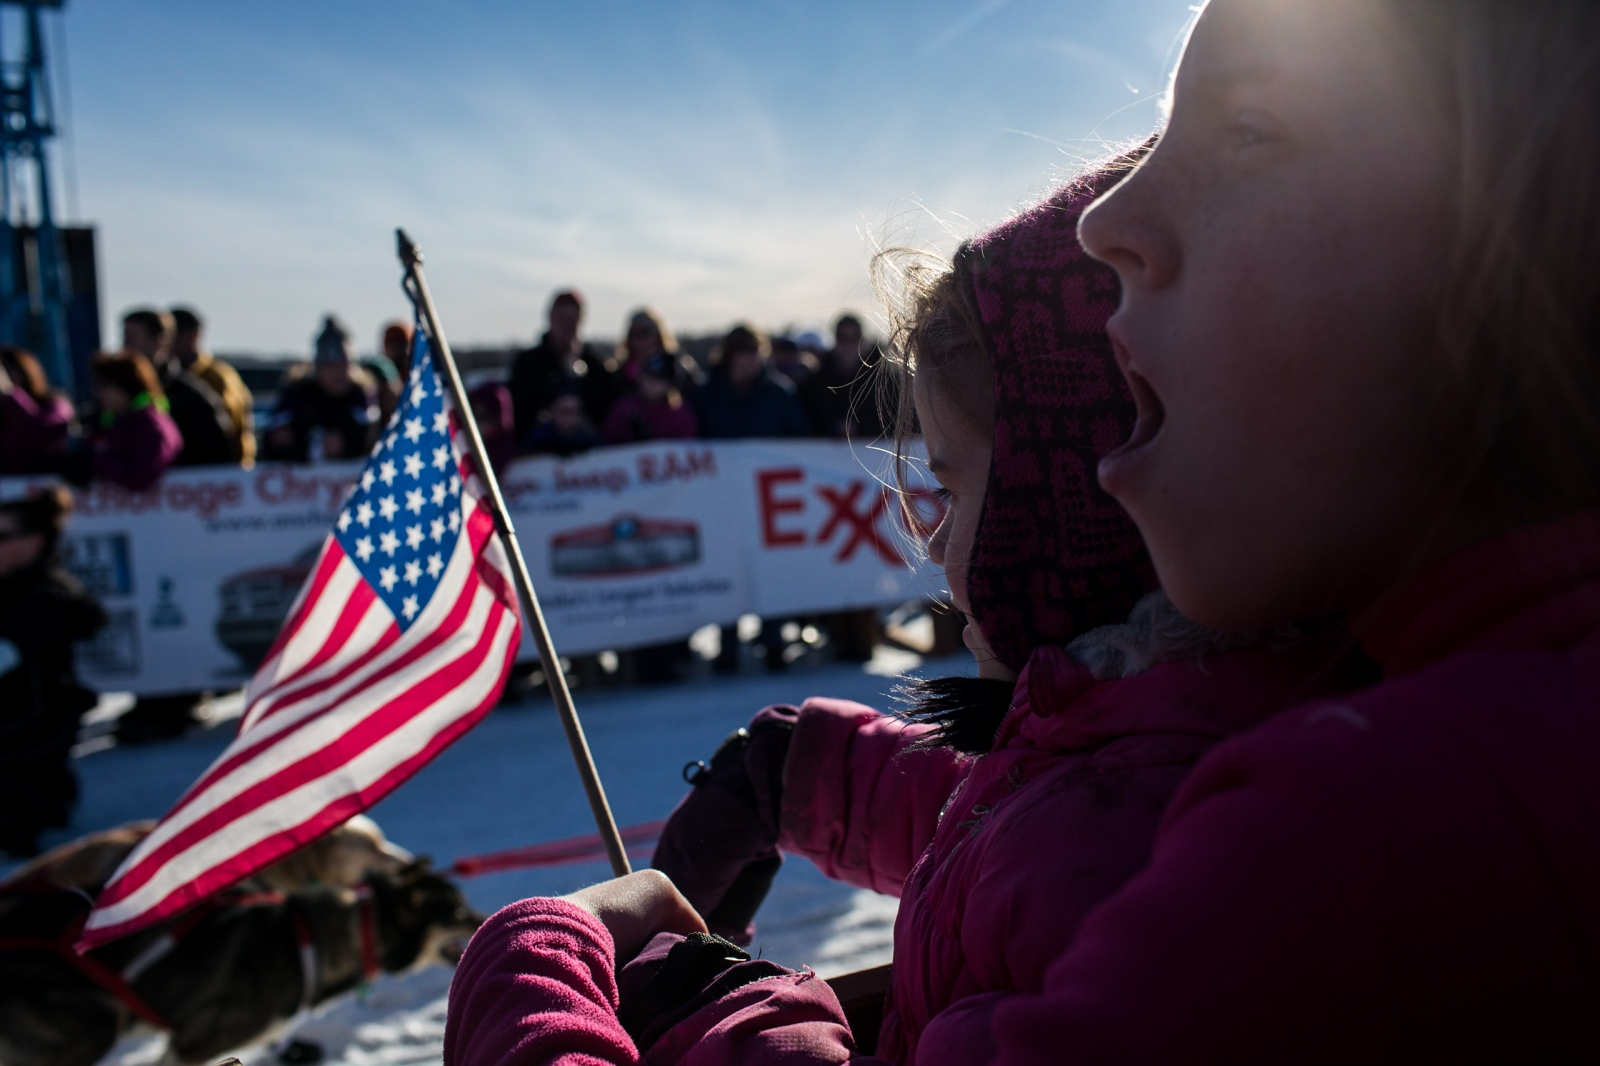 Fans cheer at the 2016 Iditarod restart in Willow, Alaska on March 6, 2016.